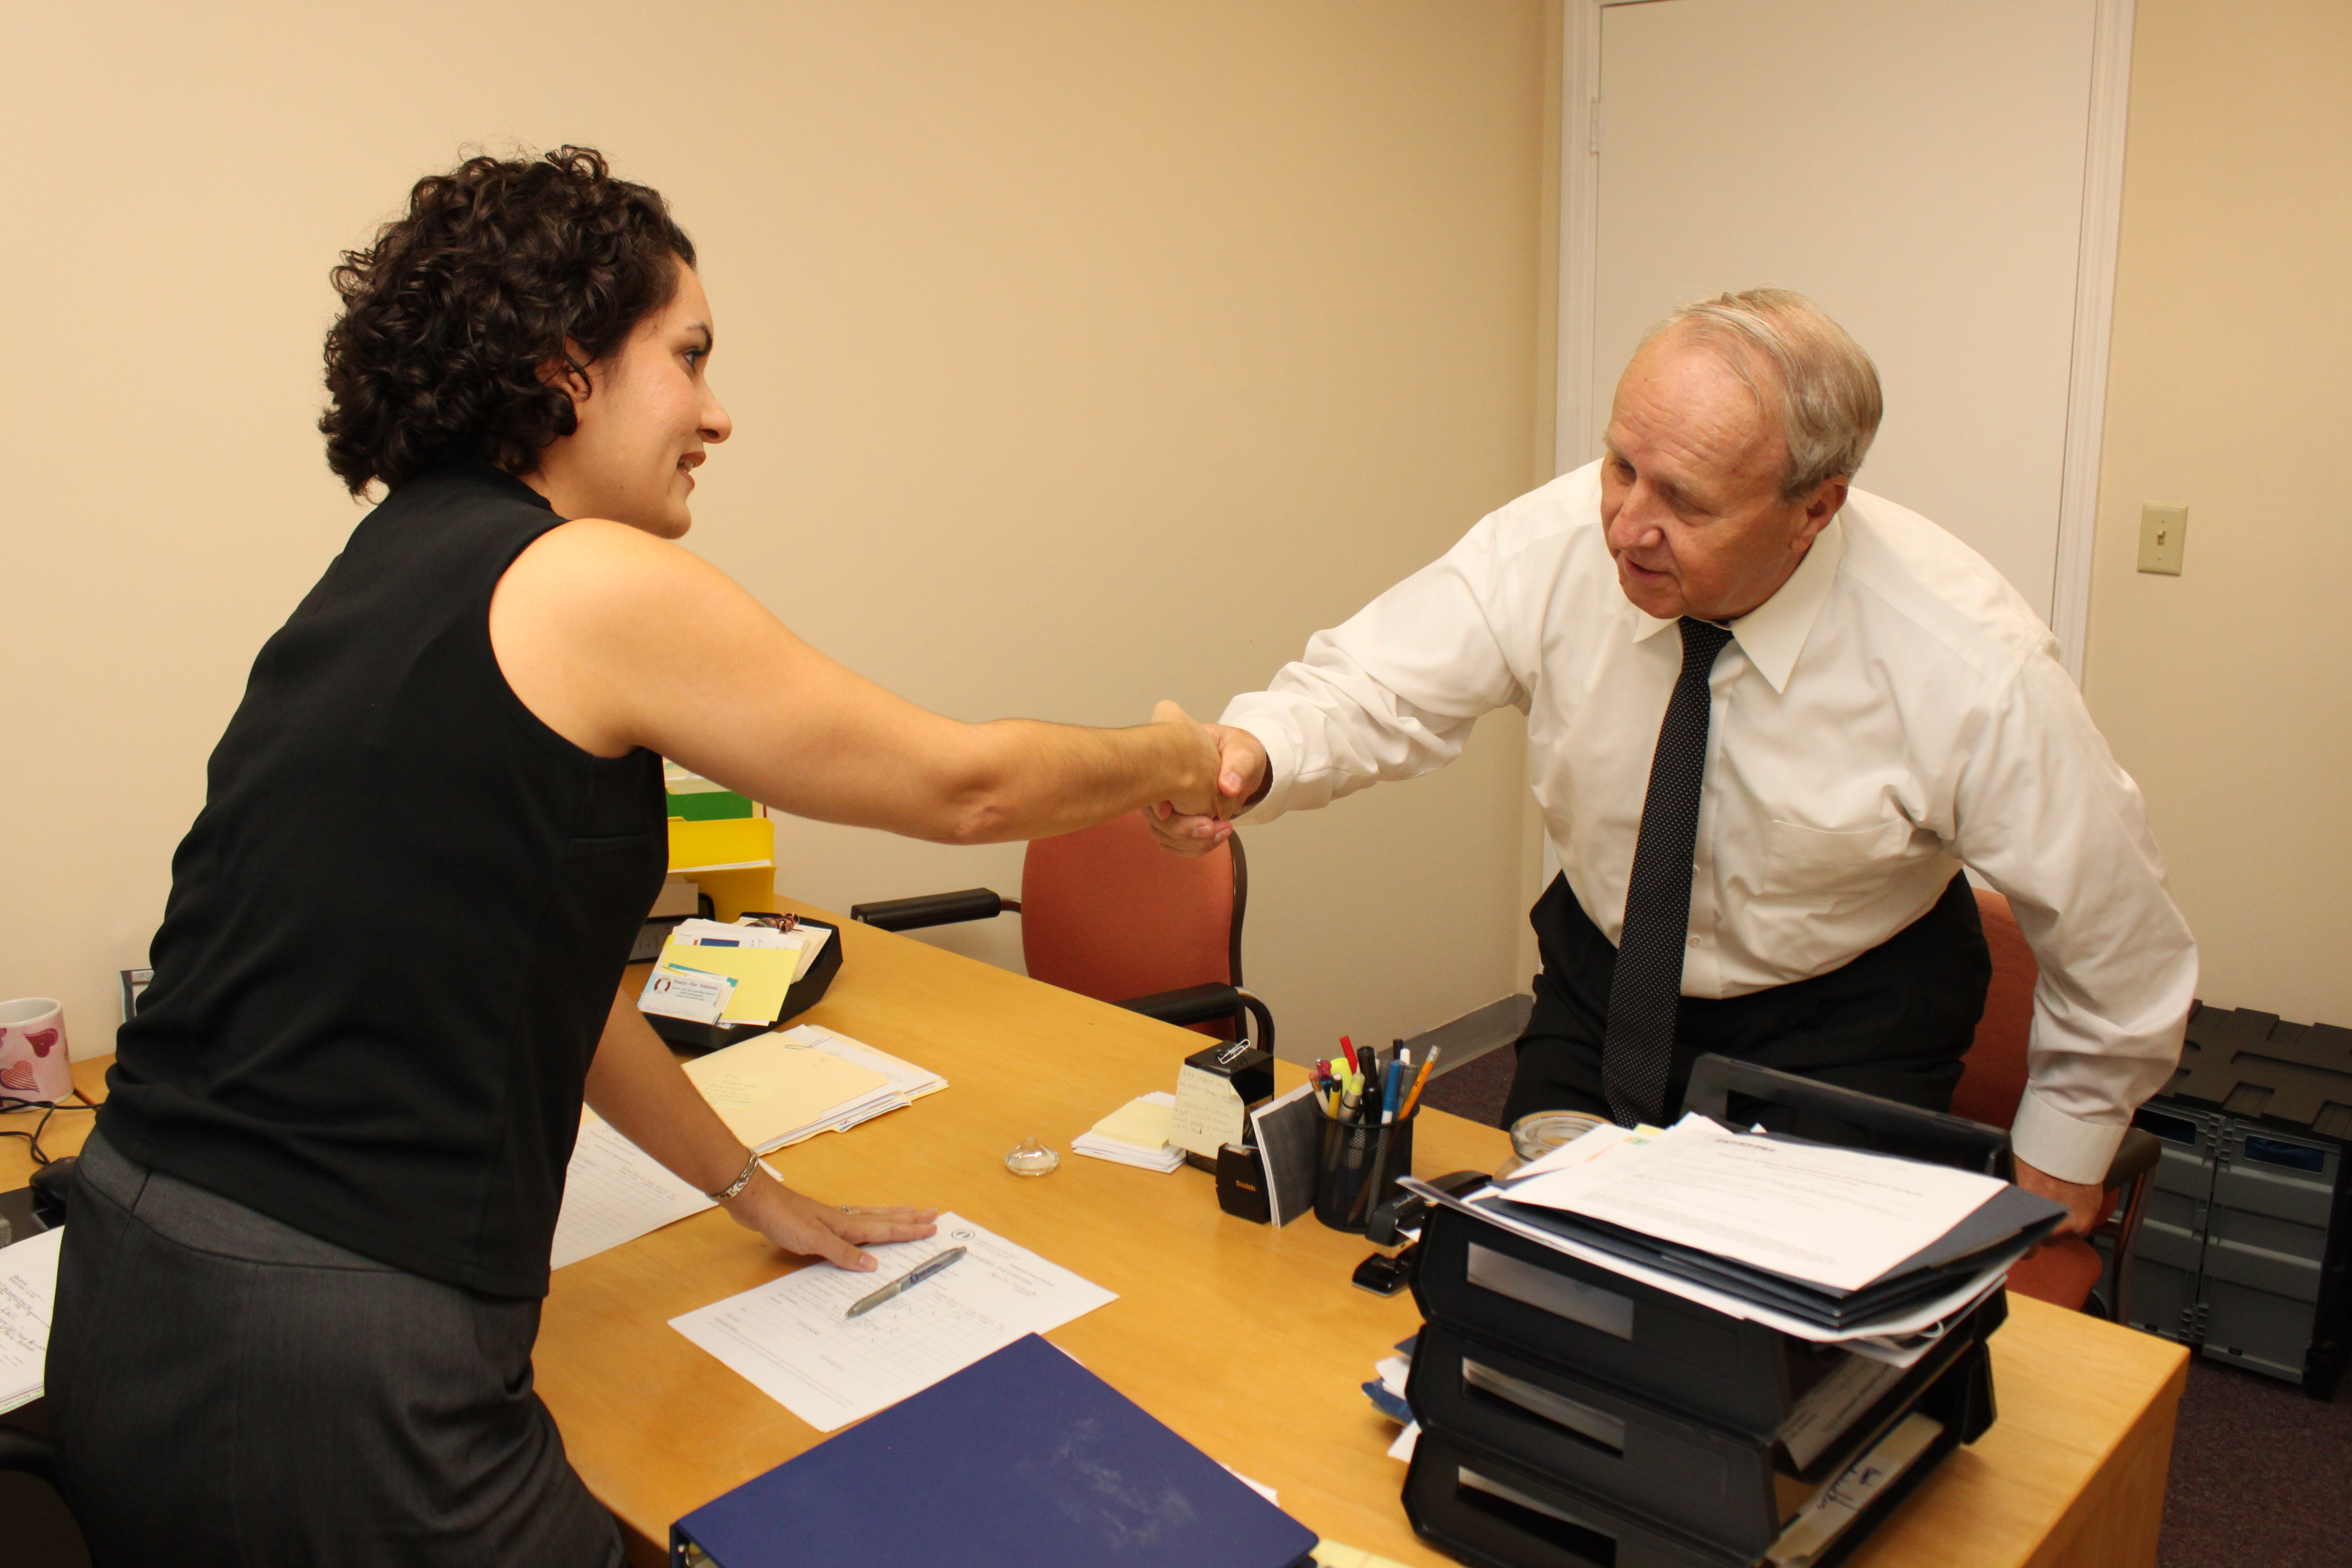 Rosemary Mulero shaking hands with a participant who is sitting across a desk.